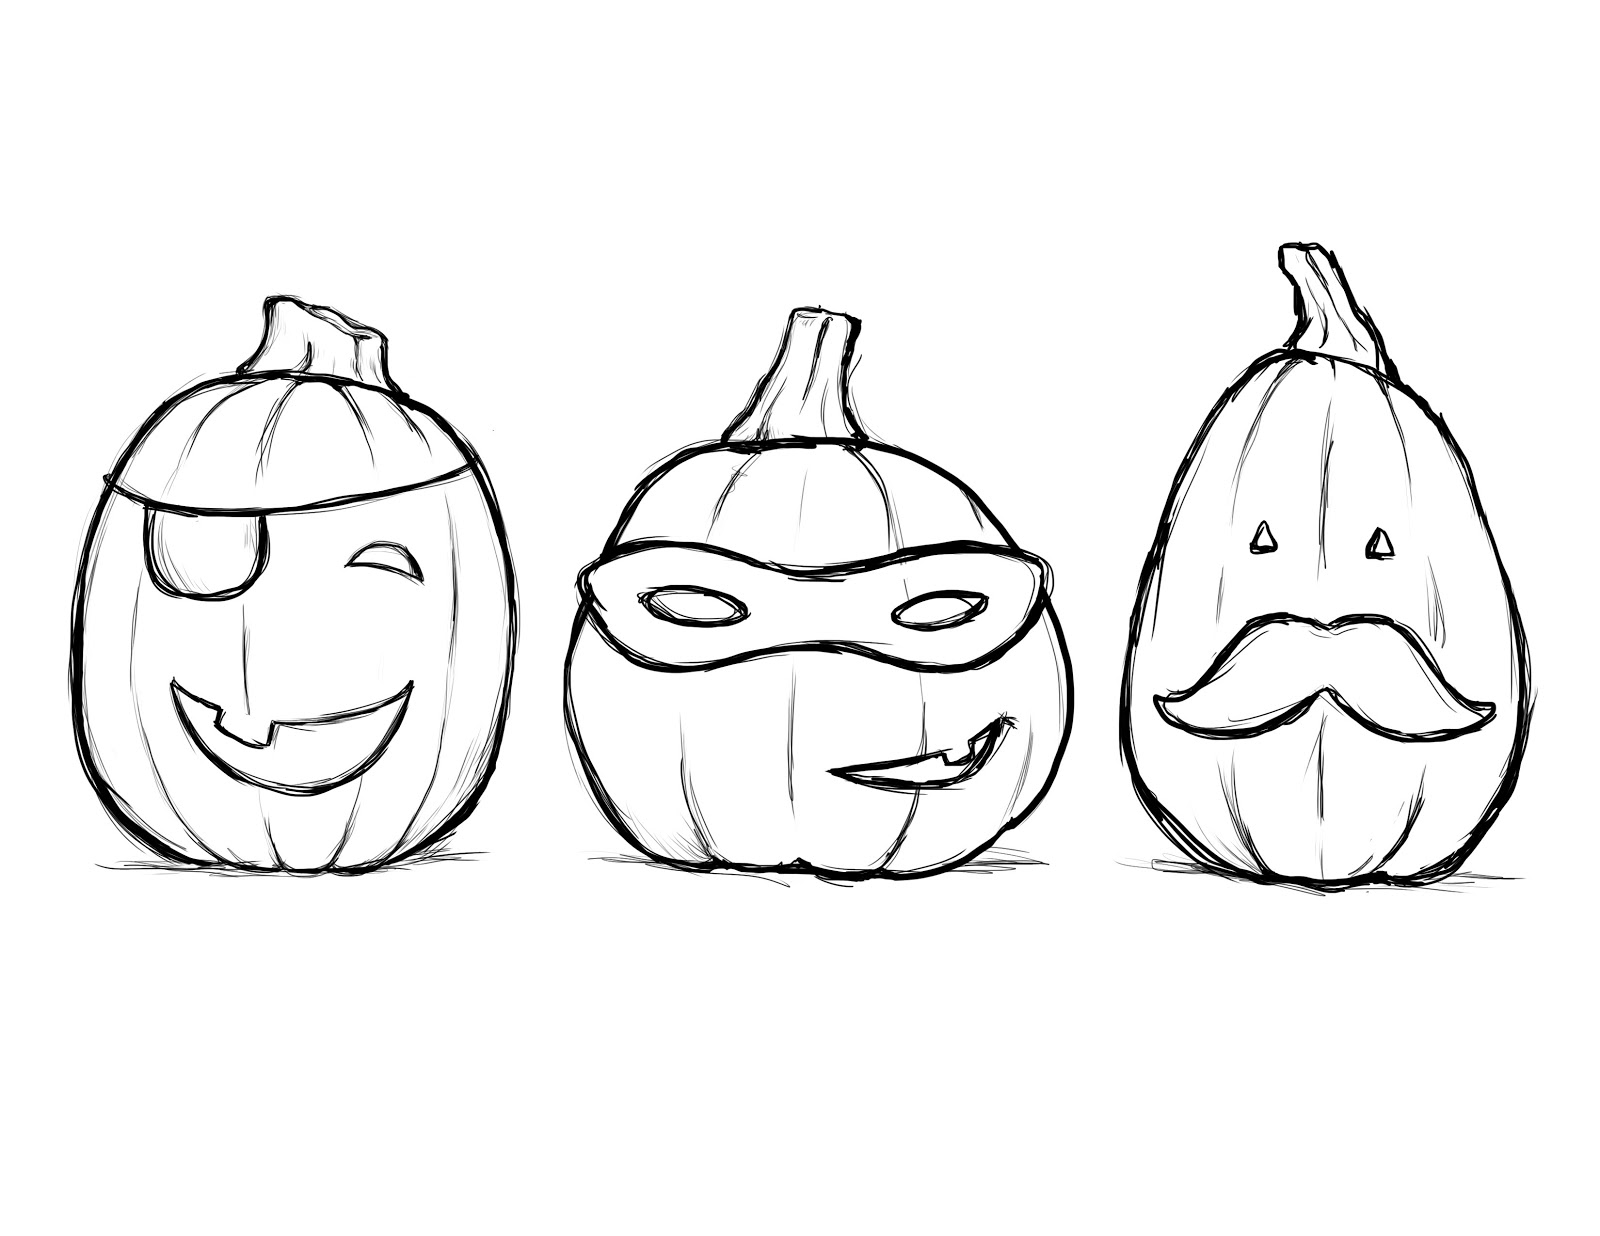 Drawn pumpkin coloring page halloween Albitrefamilylove Coloring Of com Pages